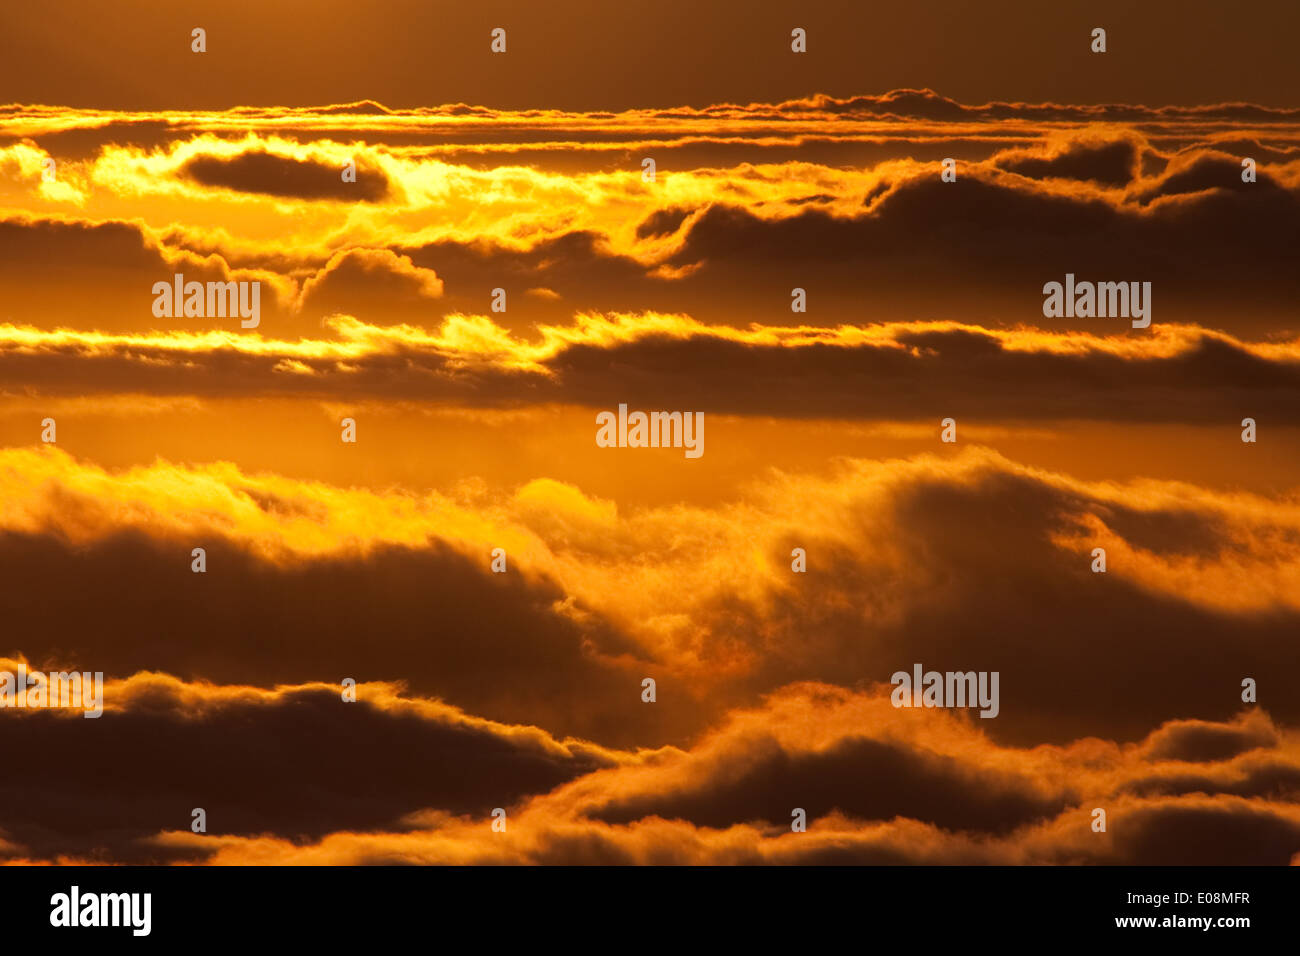 Sonnenuntergang - Sunset - Stock Image